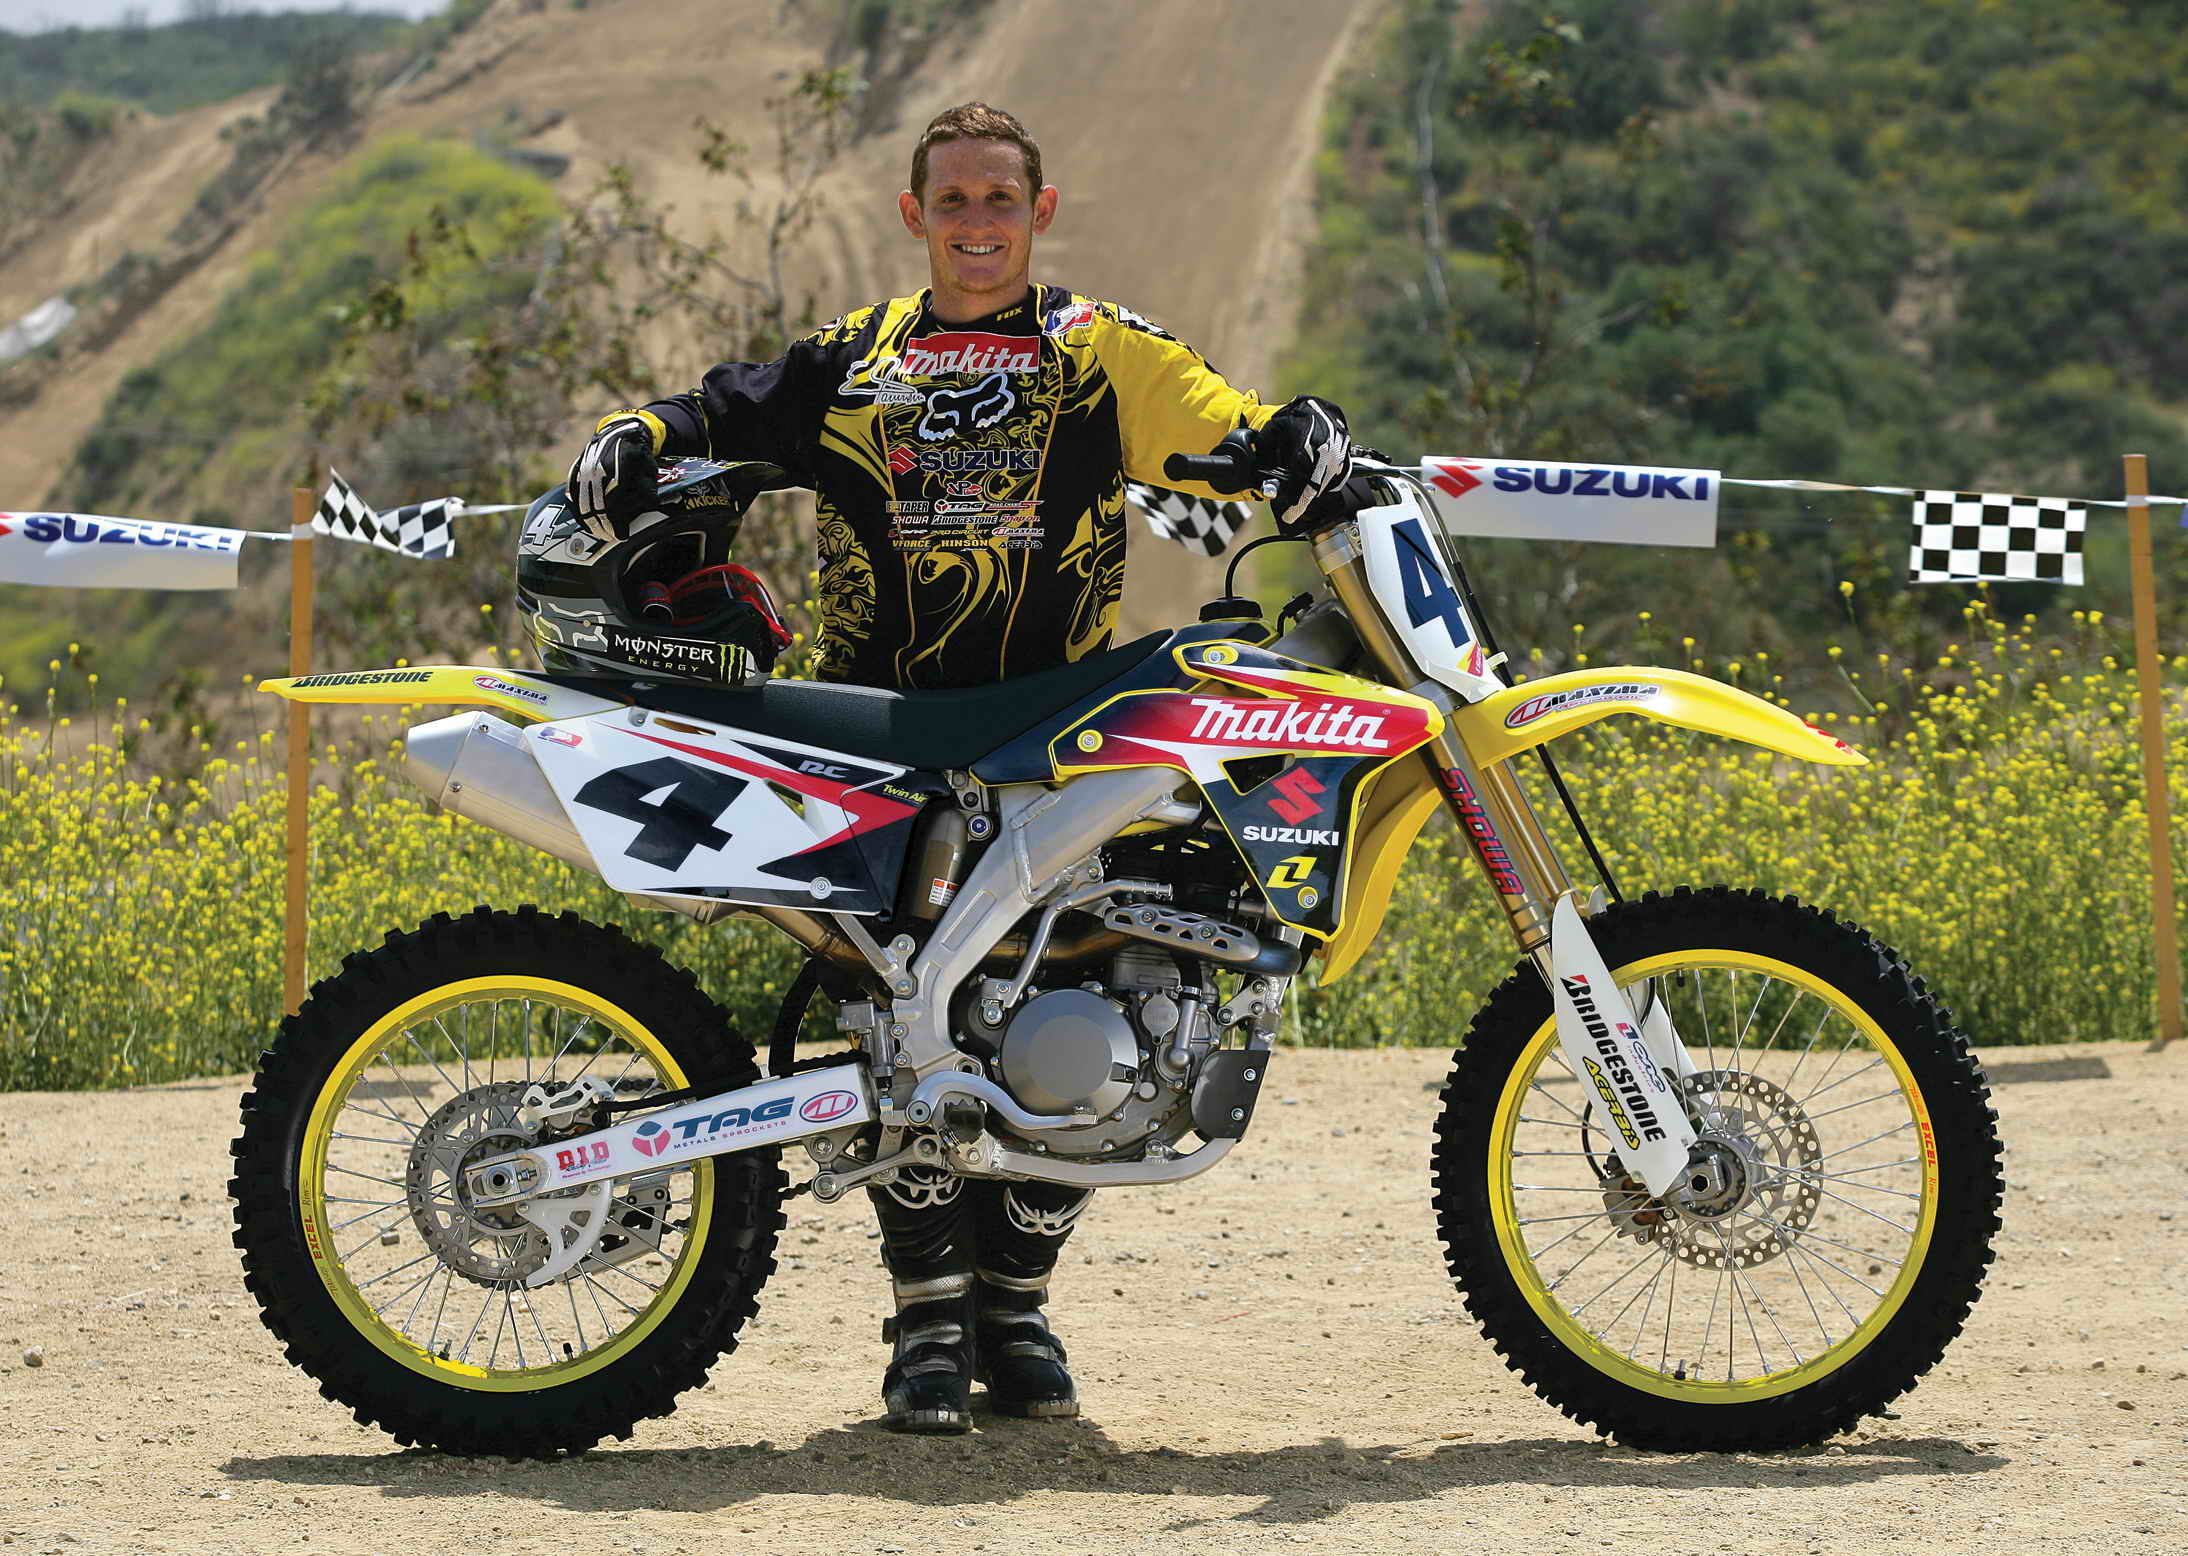 2007 Suzuki RM-Z450 Carmichael Replica | Top Sd